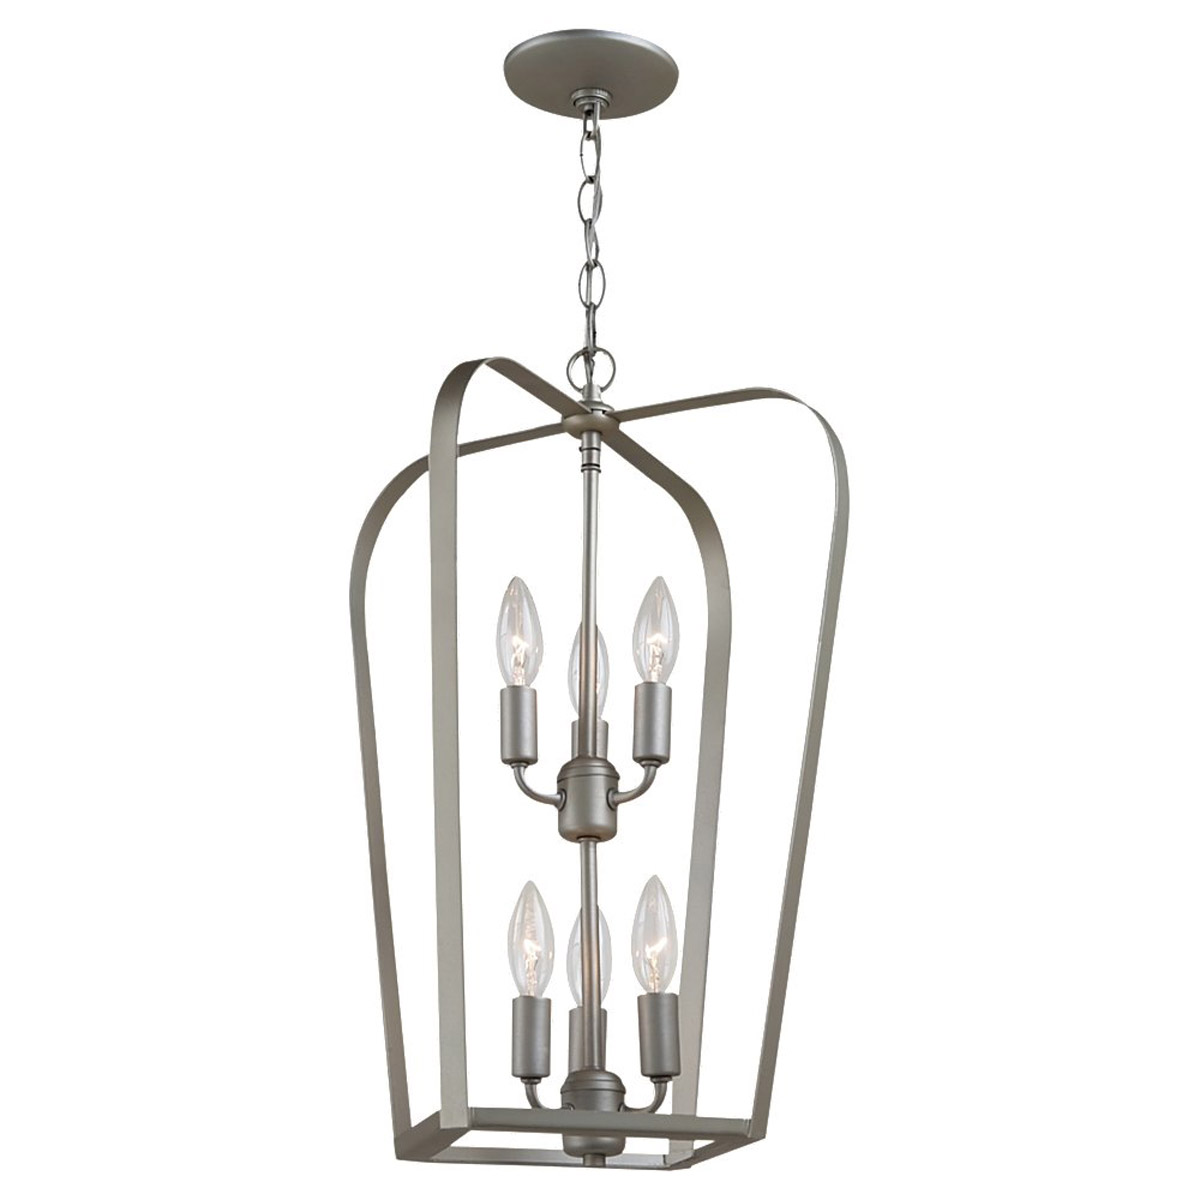 Sea Gull Lighting Windgate 6 Light Foyer Pendant in Painted Brushed Nickel 54941-753